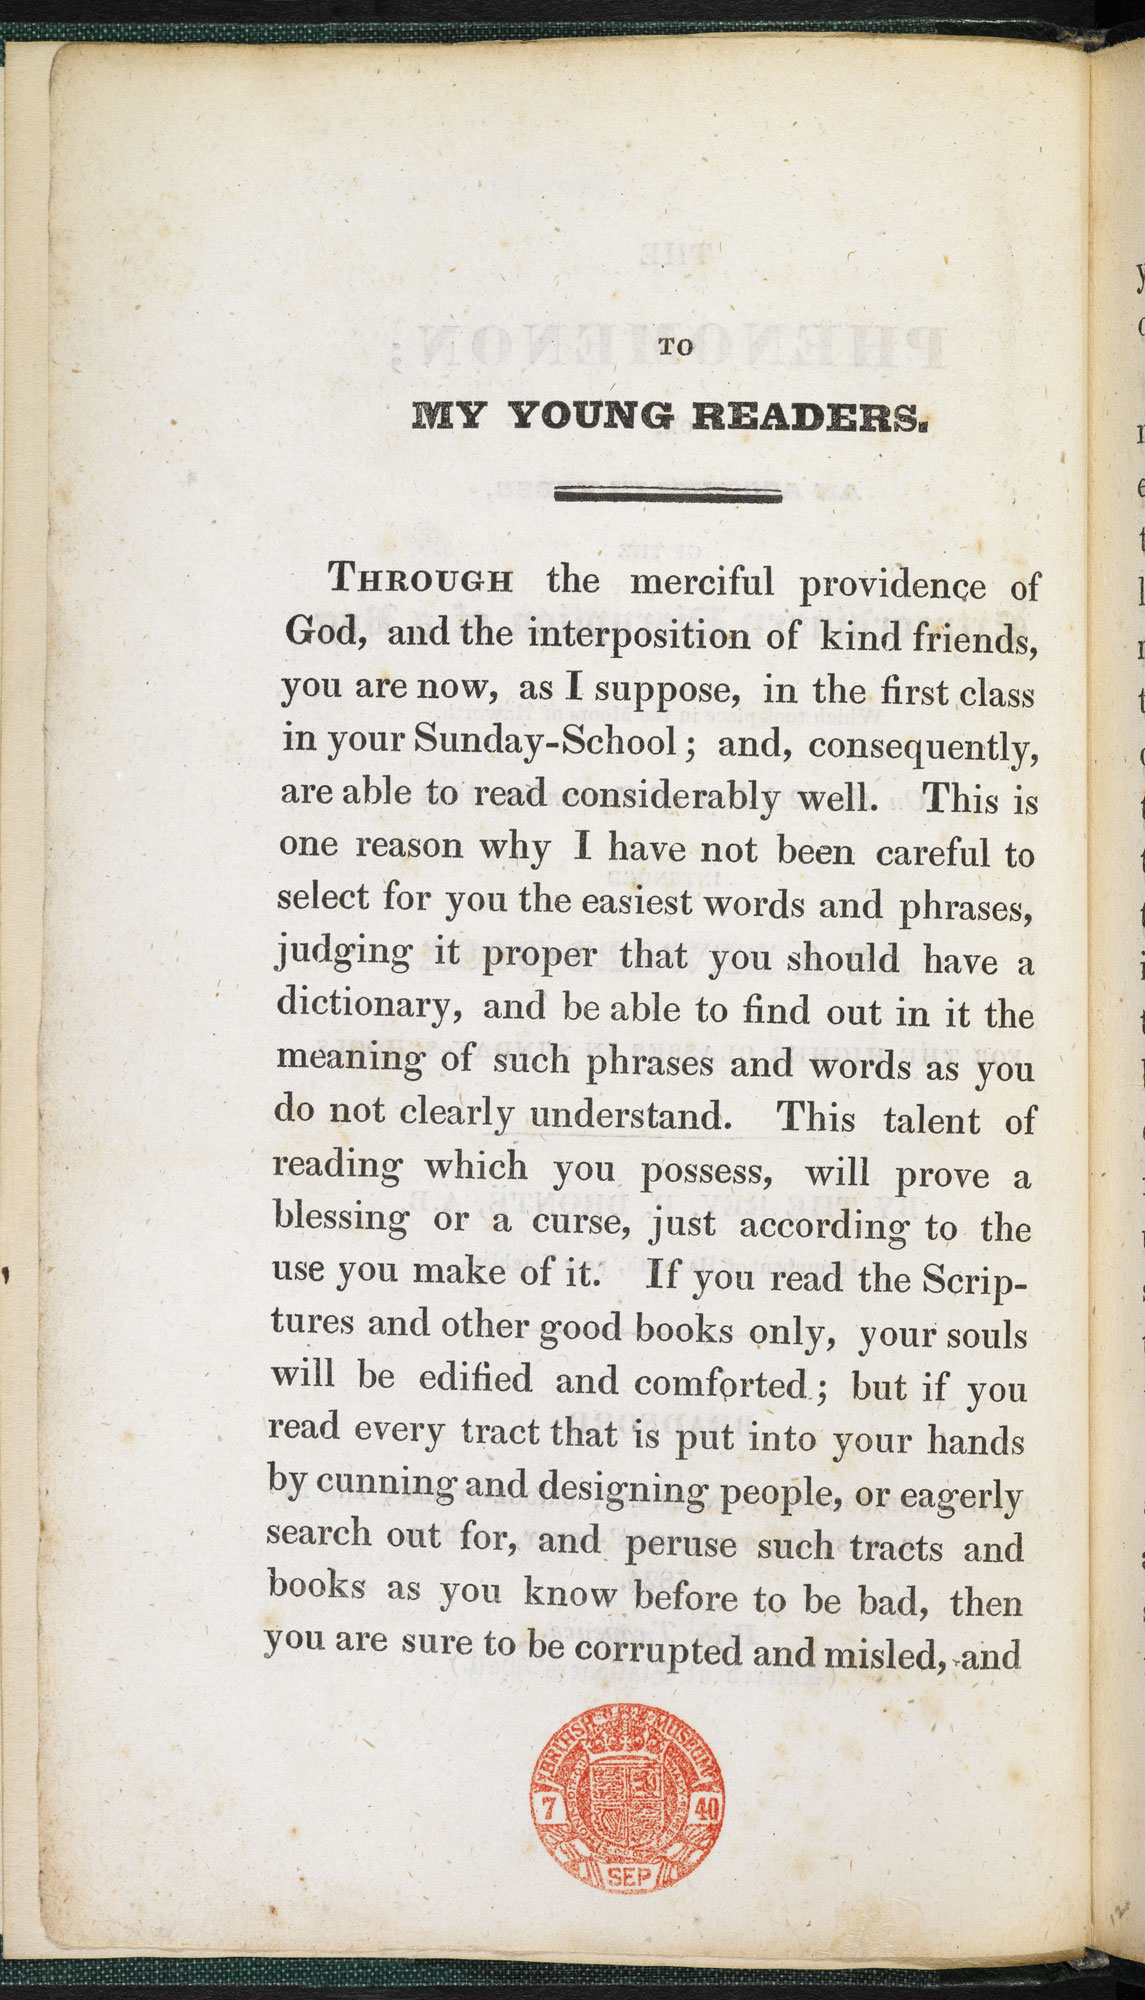 An address to children by Patrick Brontë, father of the Brontës [page: [2]]